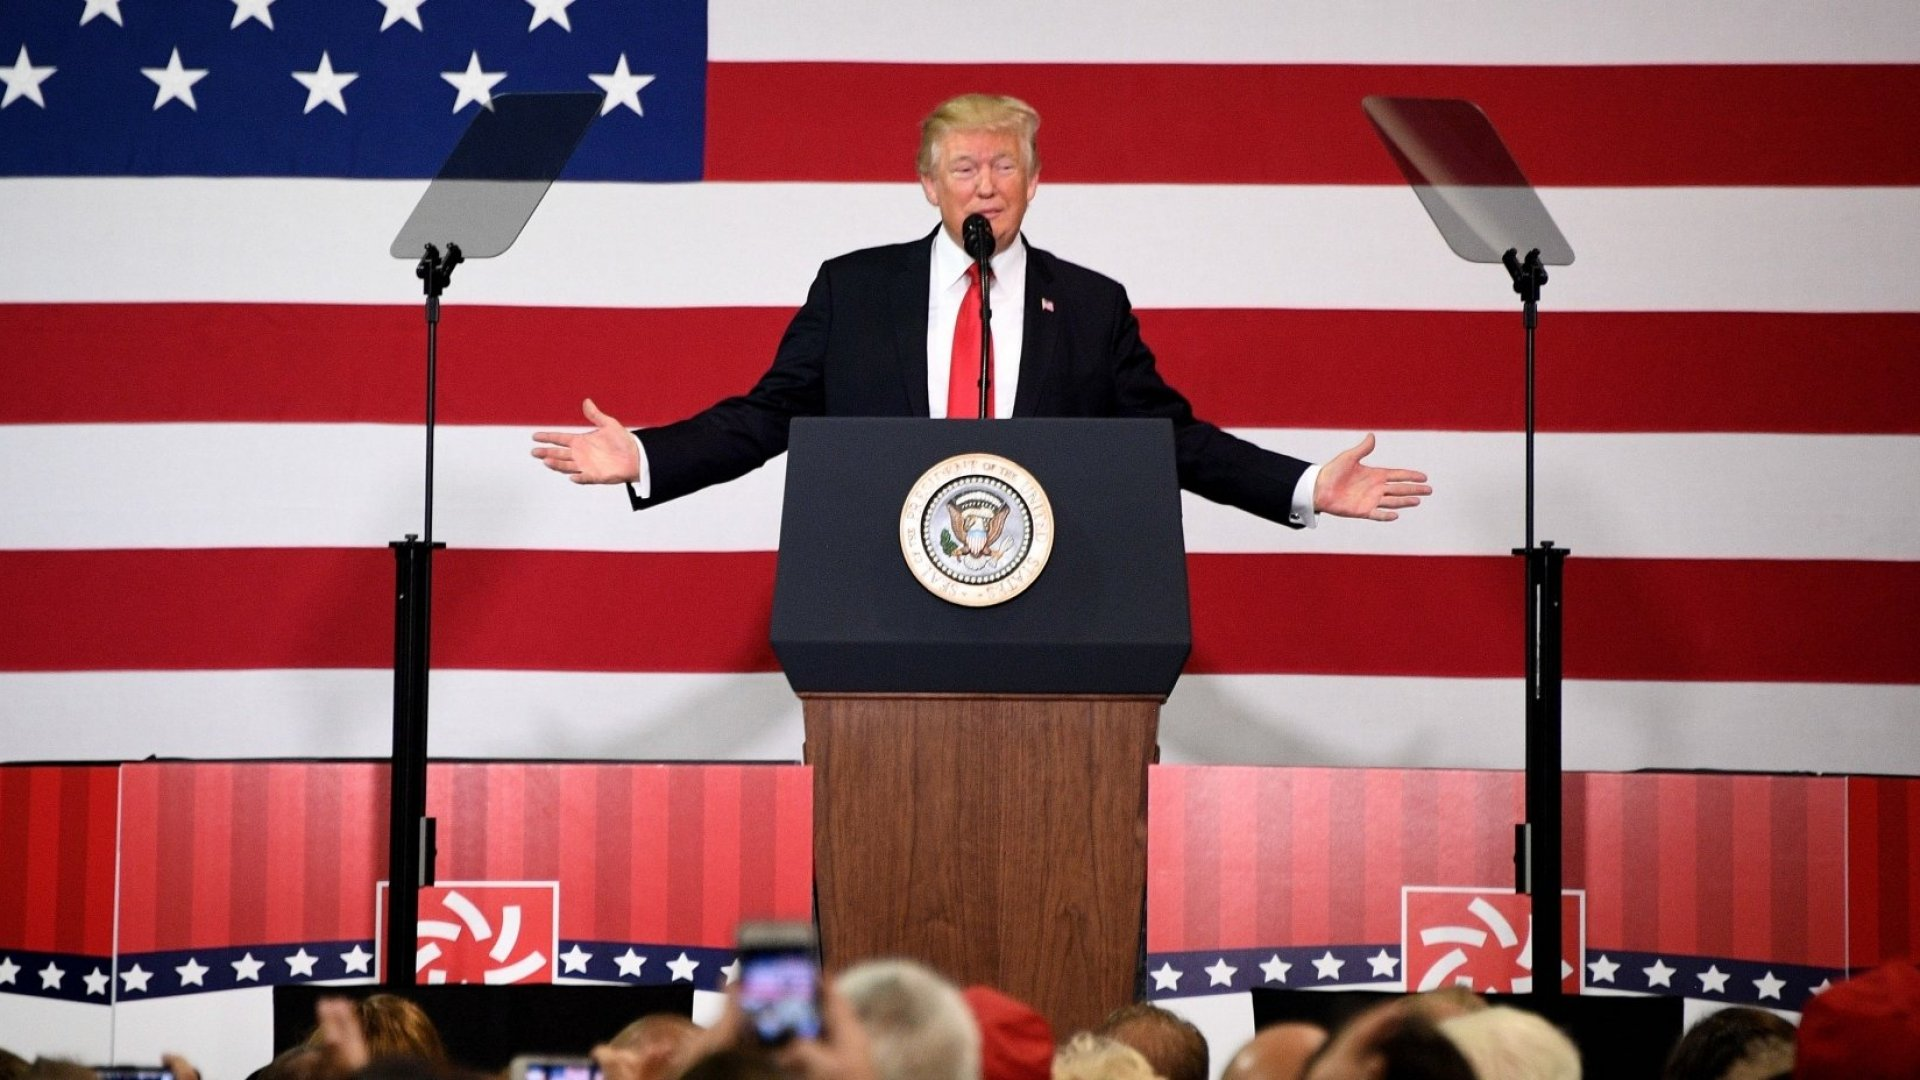 US President Donald Trump participates in a tax reform kickoff event at the Loren Cook Company in Springfield, MO, on August 30, 2017.